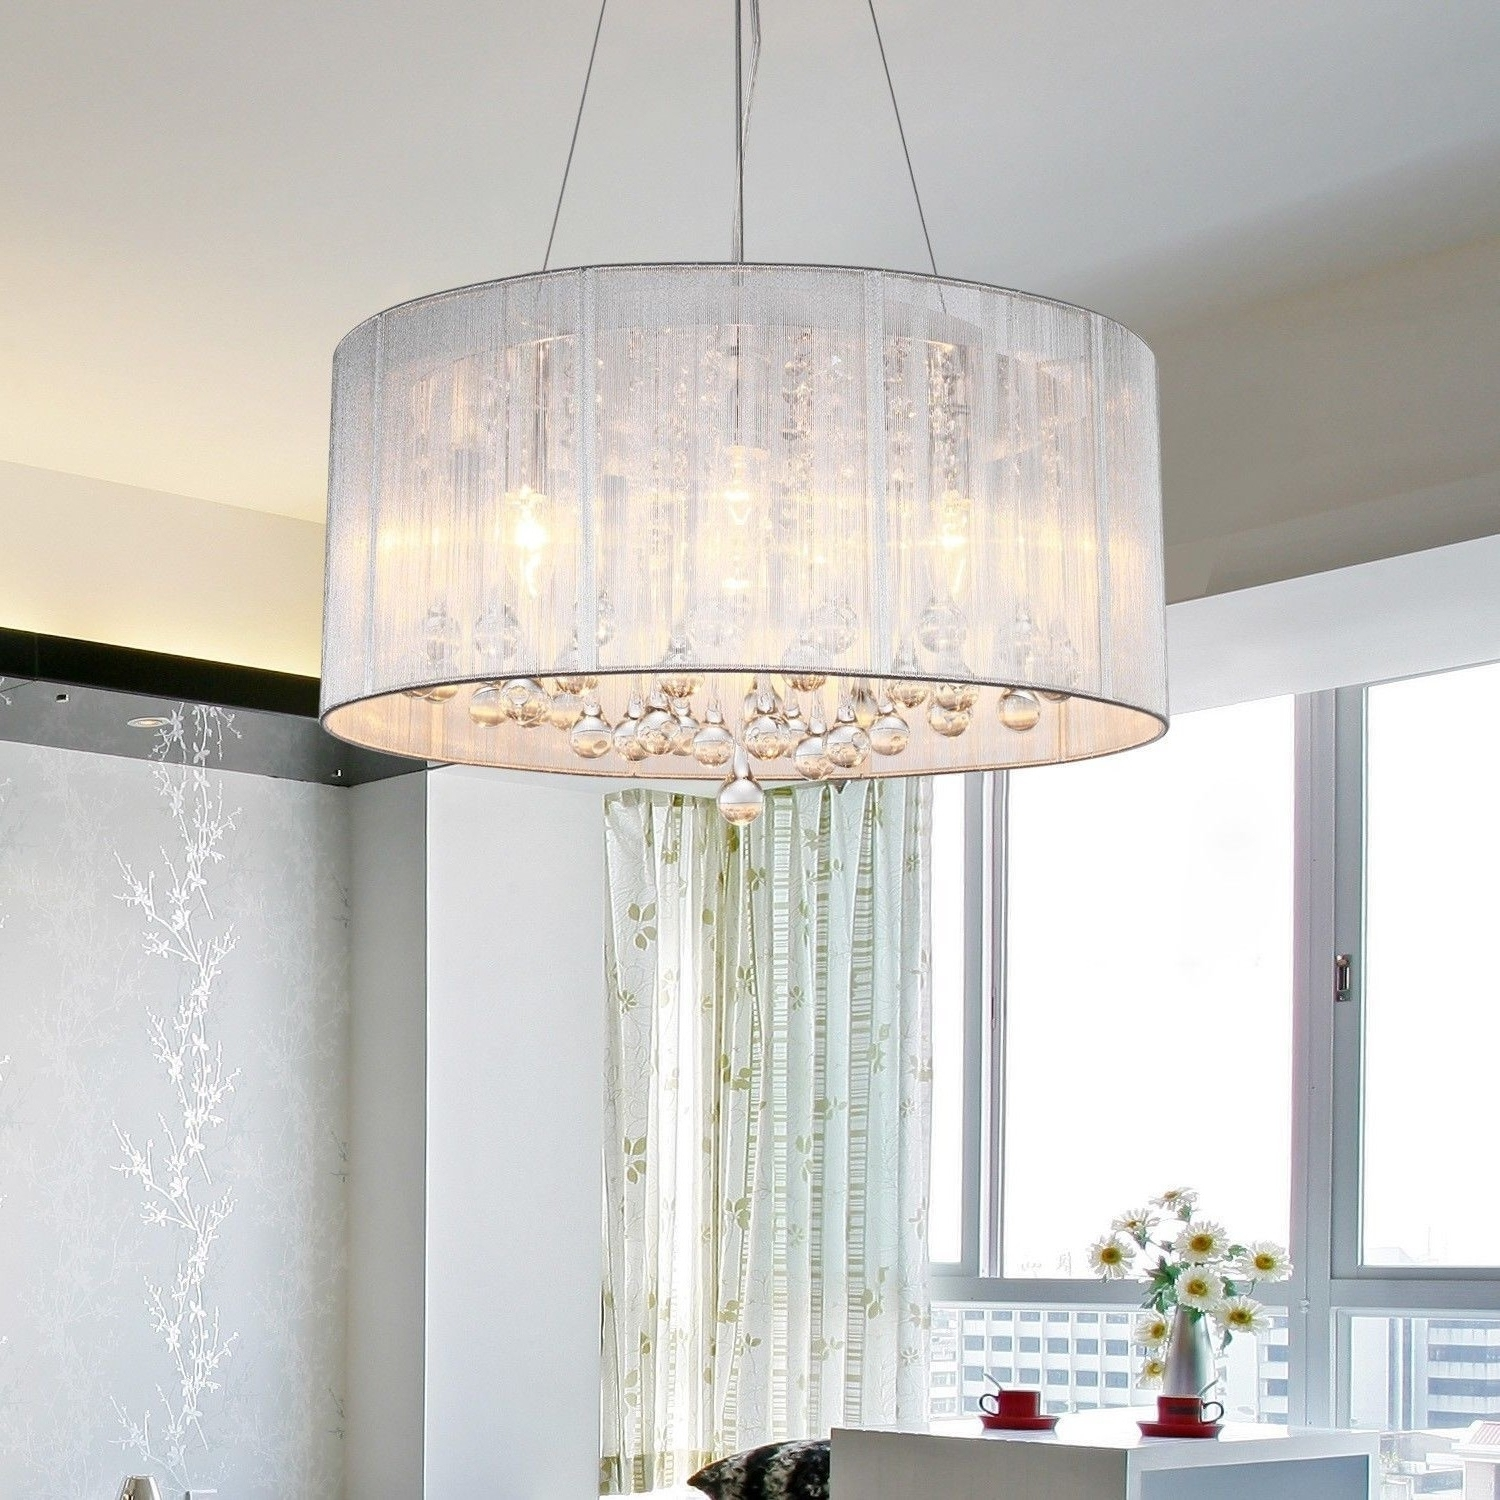 Trendy Crystal Lamp Shades For Chandeliers : Lamp World With Regard To Chandeliers With Lamp Shades (View 14 of 15)